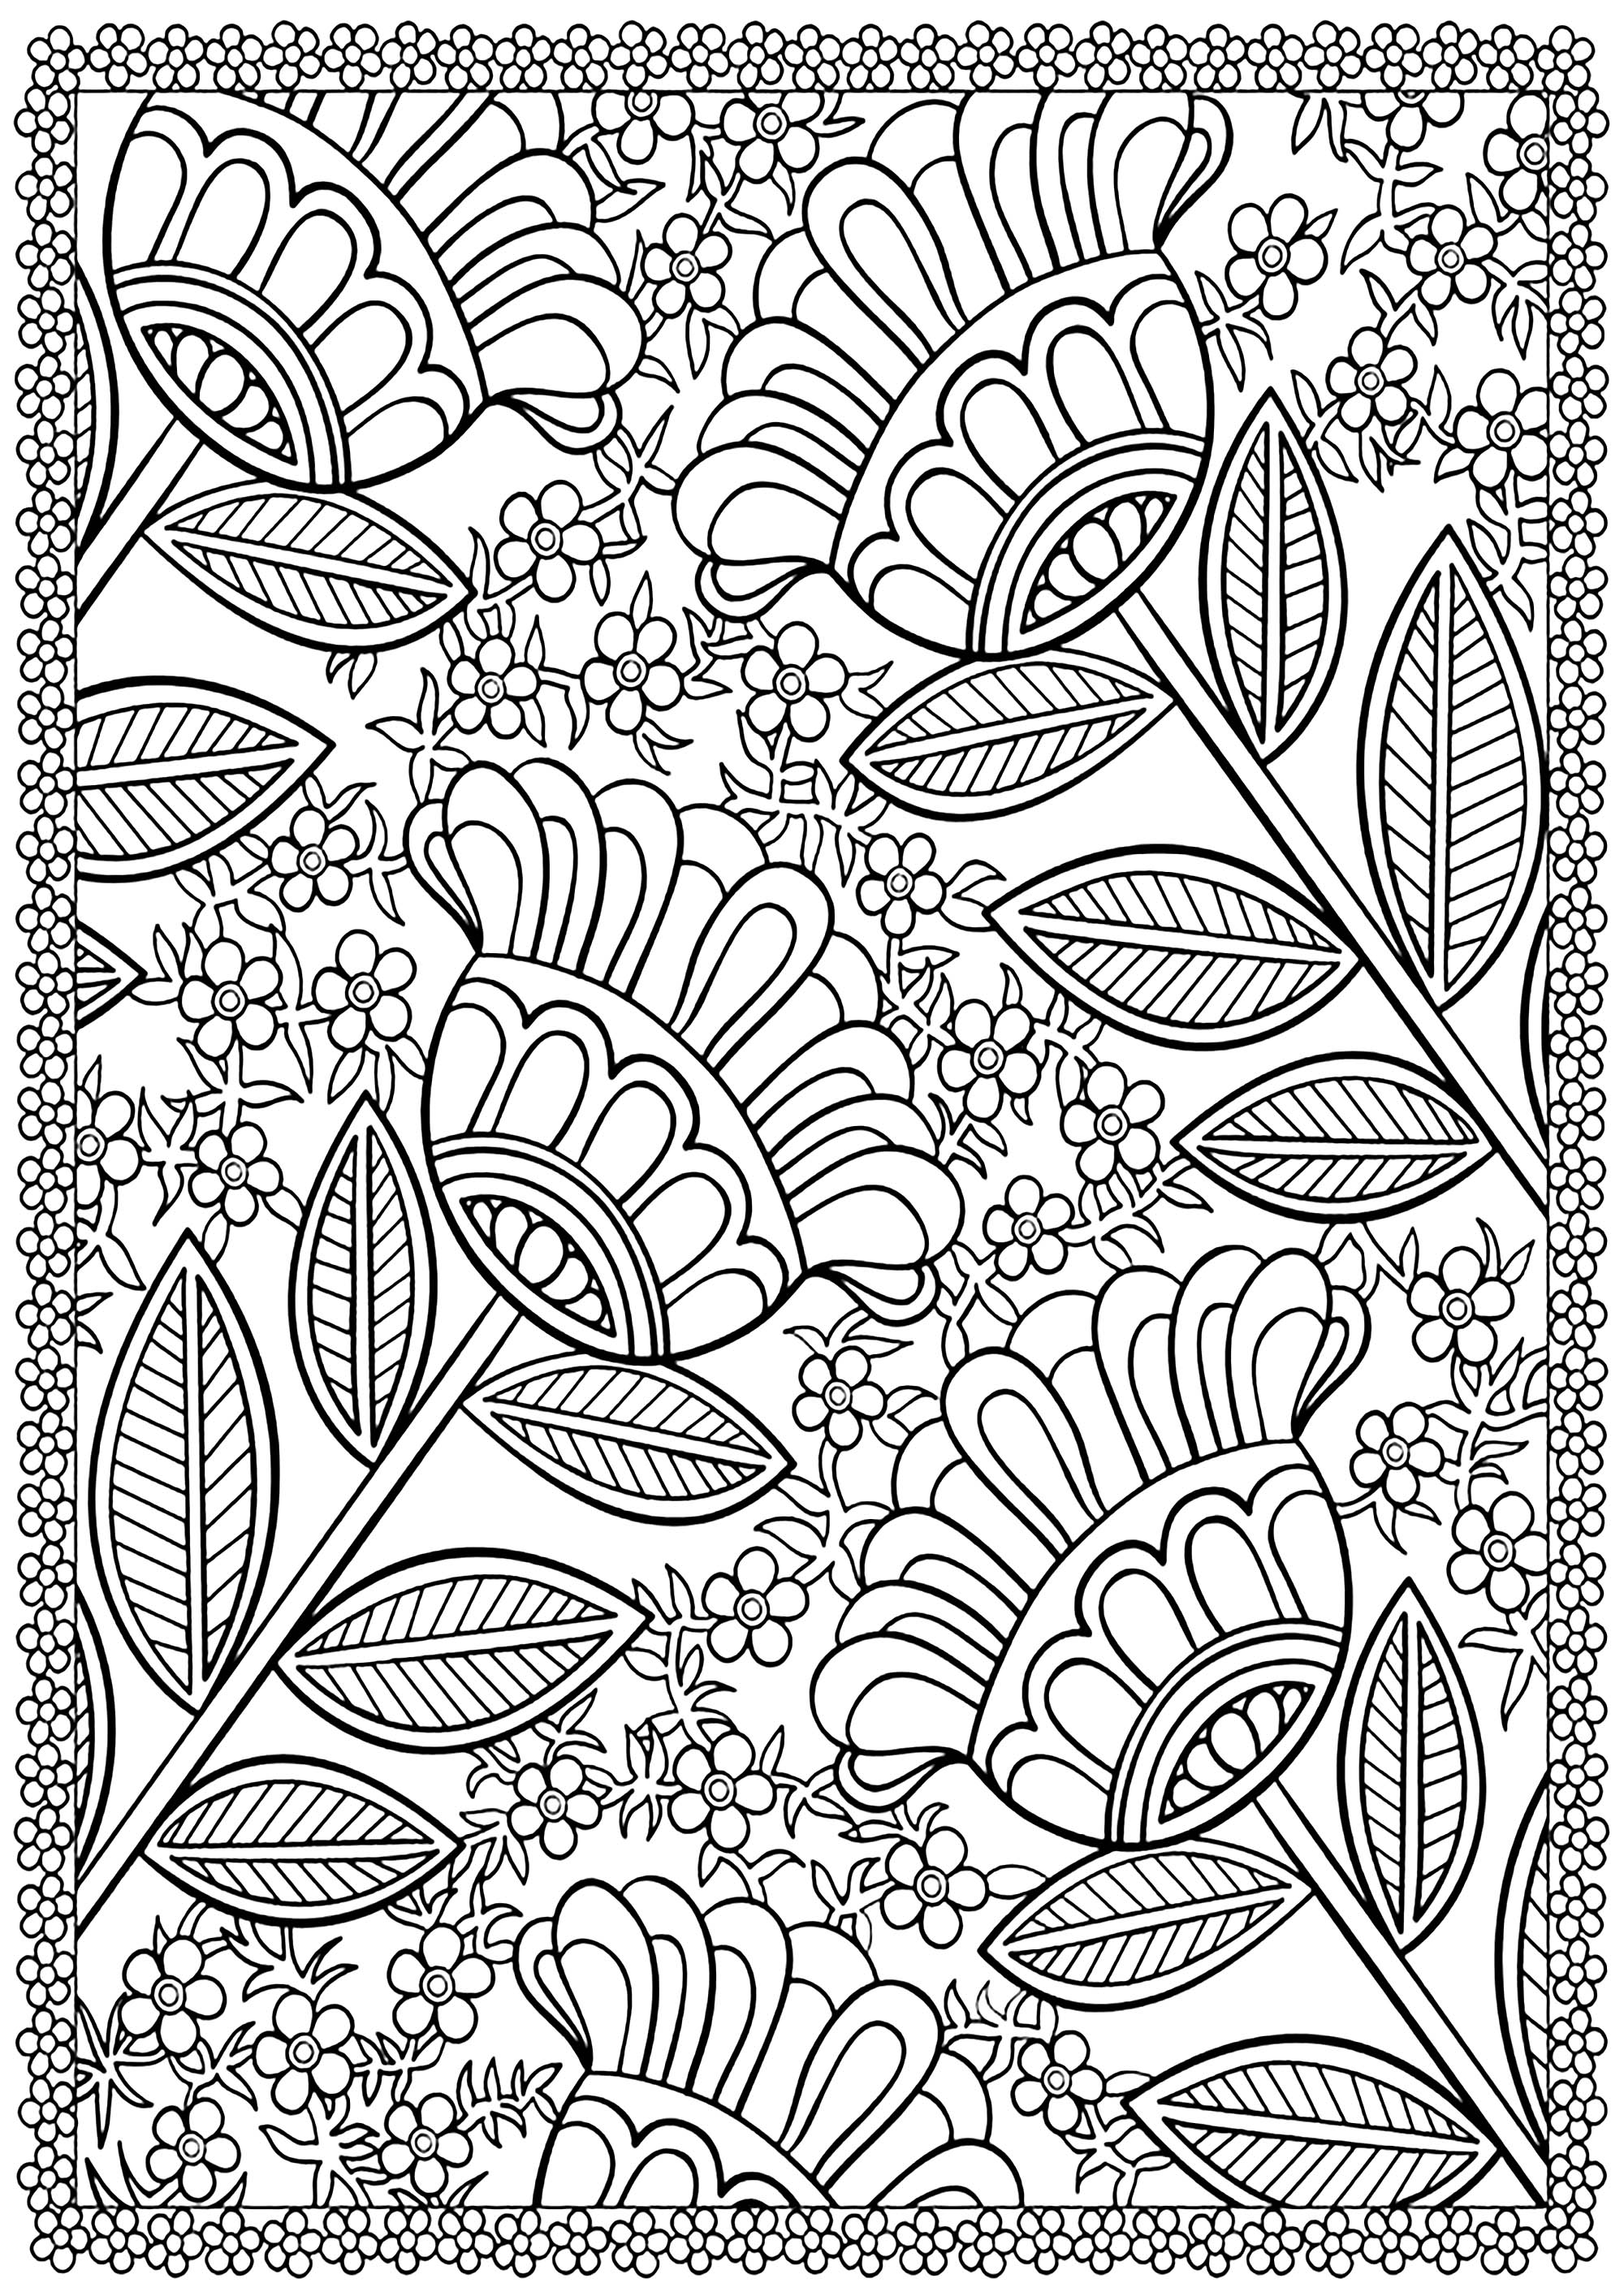 coloring websites peacocks to print for free peacocks kids coloring pages websites coloring